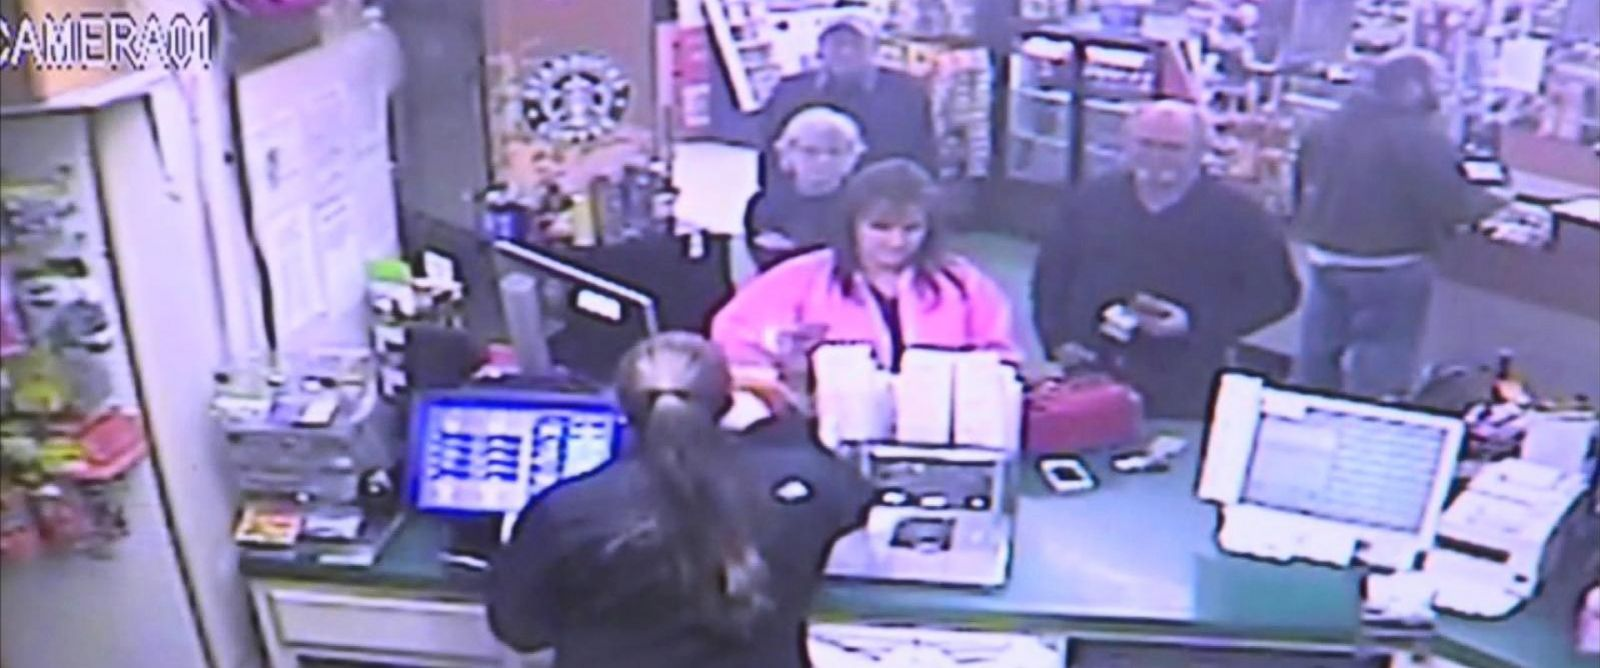 PHOTO: A still image from surveillance footage shows the moment John and Lisa Robinson bought a winning Powerball ticket from Naifehs Food Mart in Munford, Tennessee.